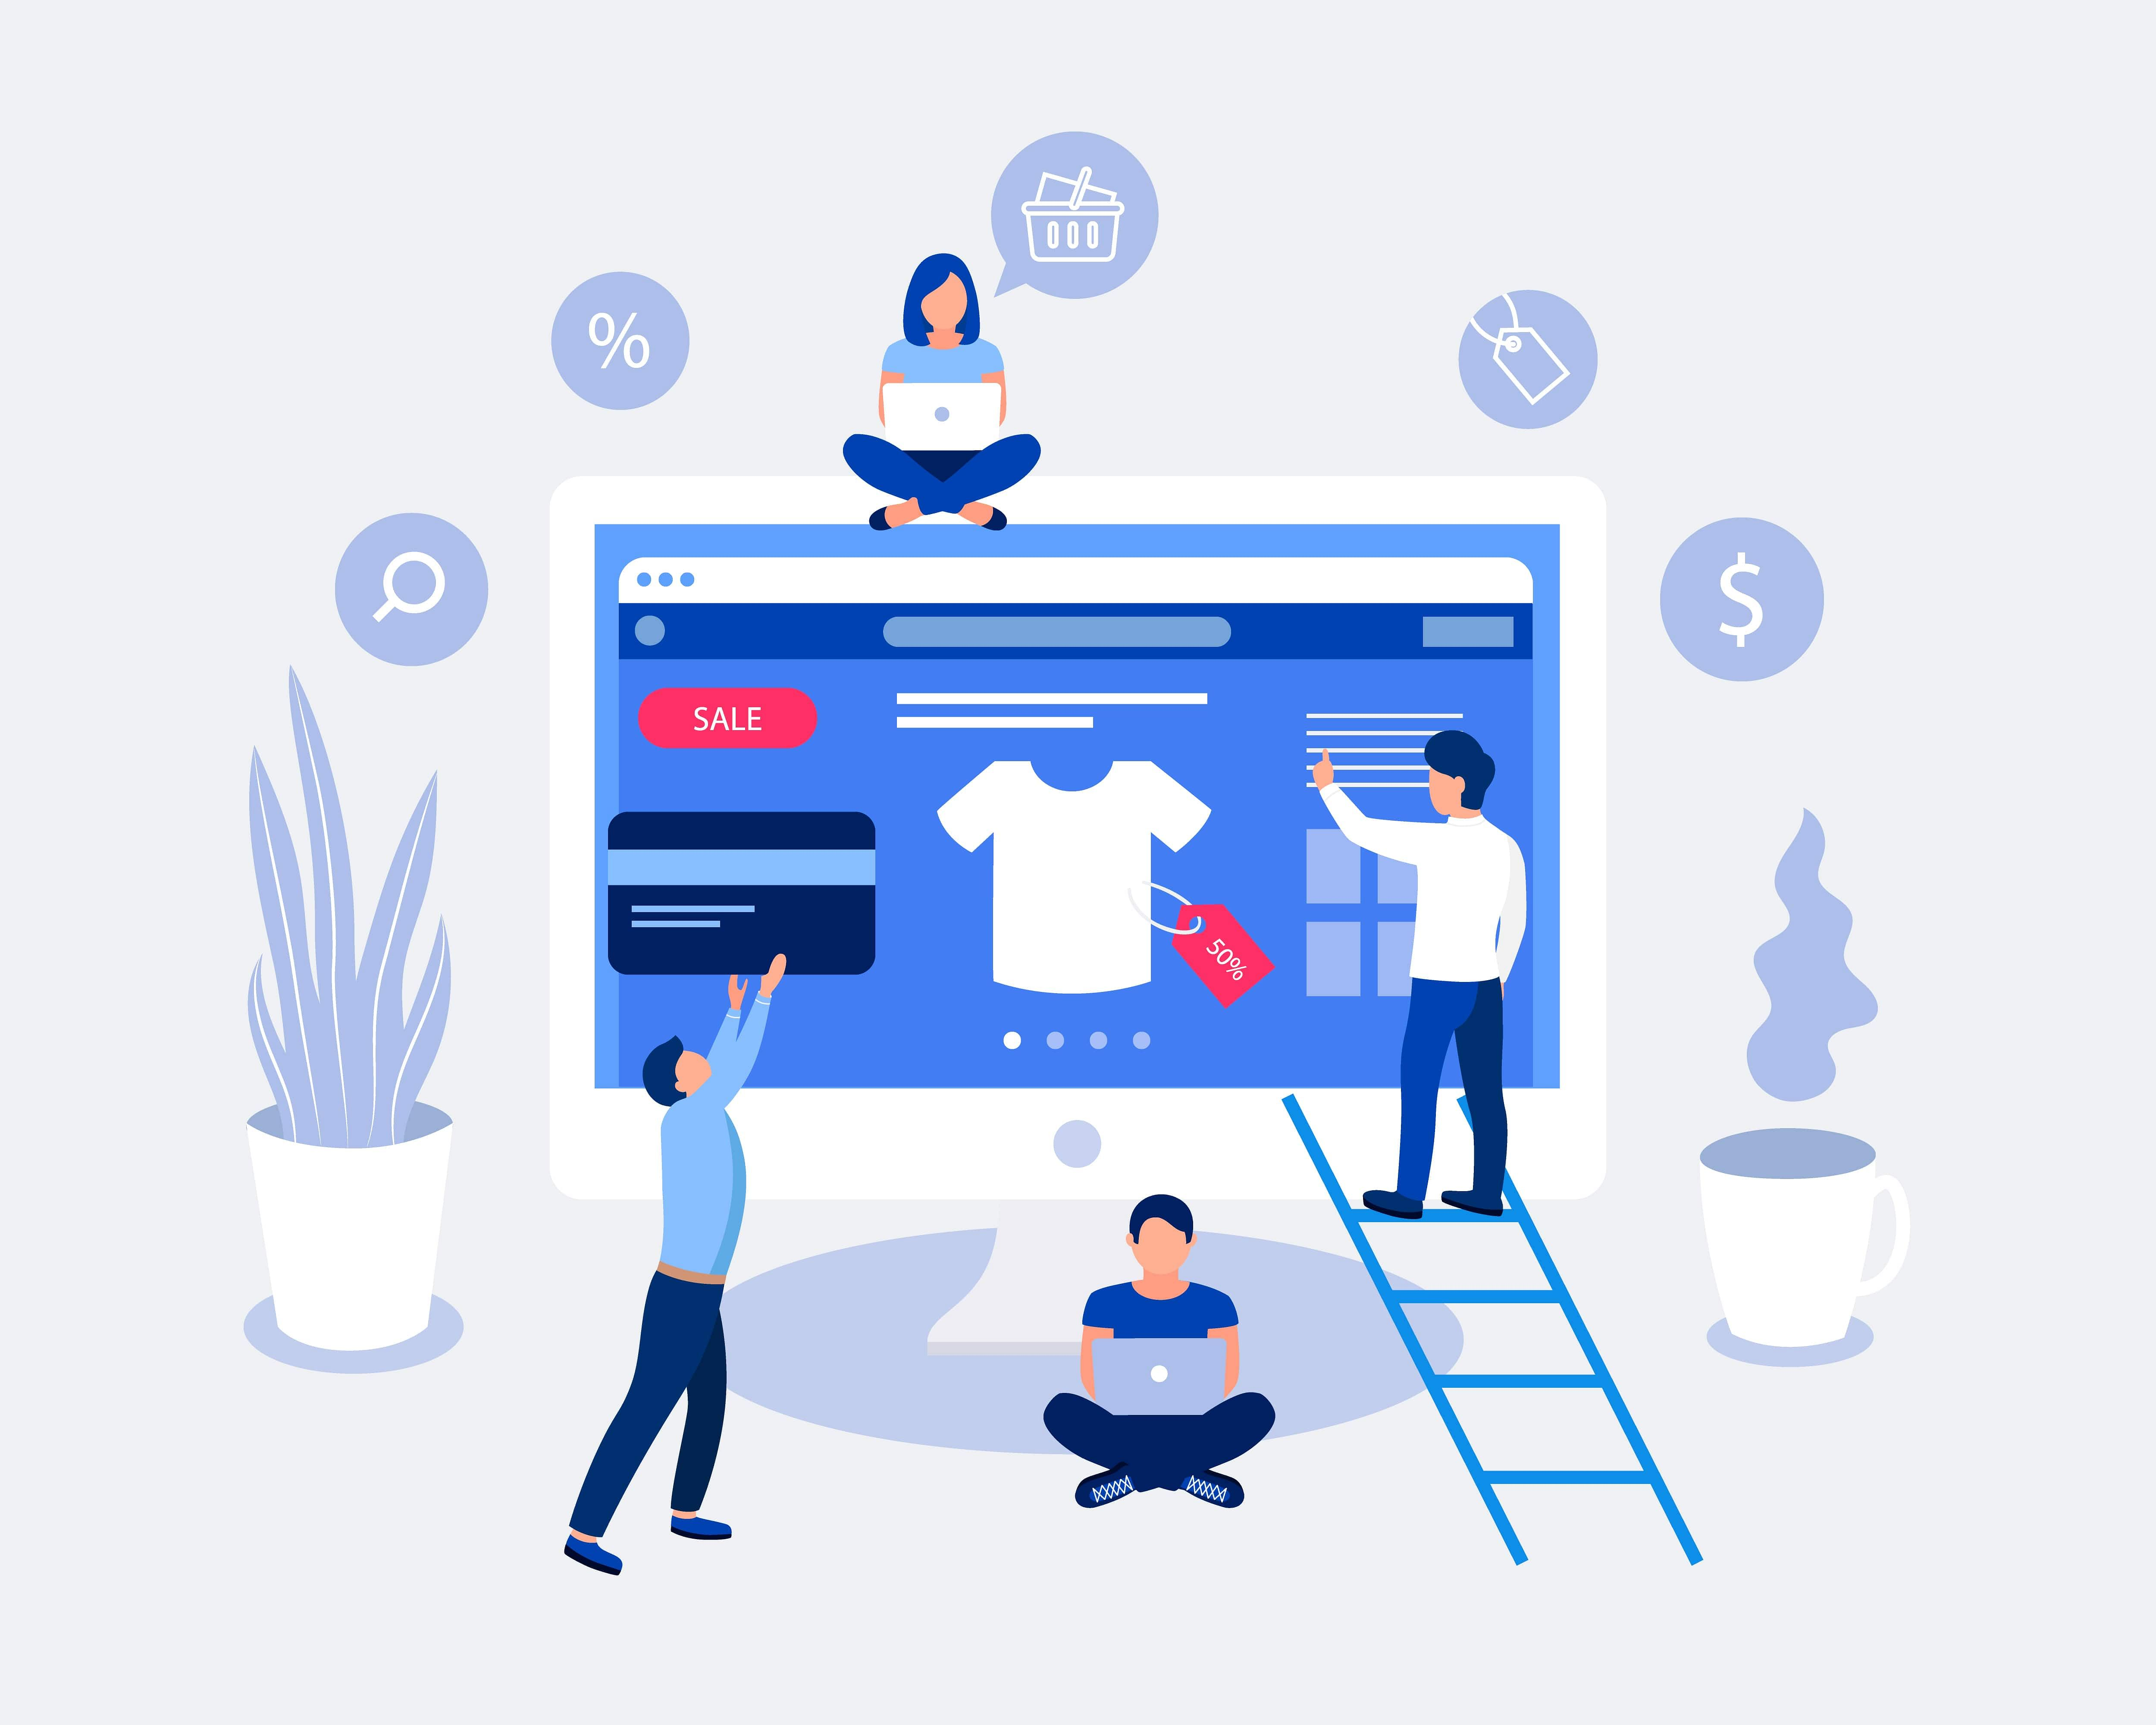 How to Execute an E-commerce Strategy Successfully